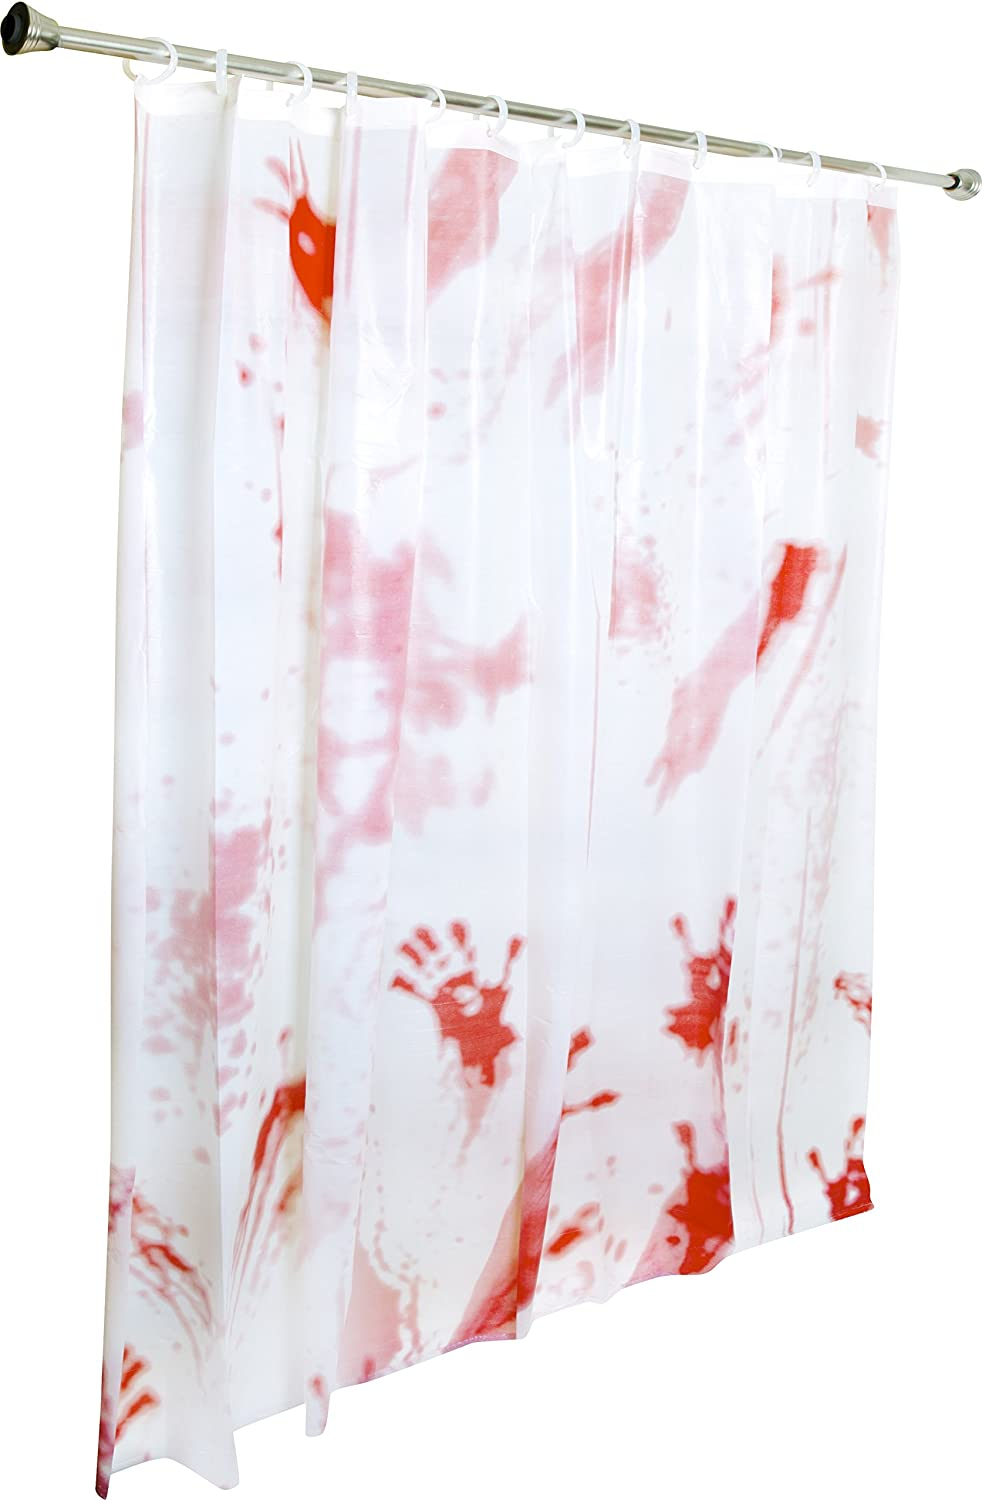 Kangaroo's Bloody Shower Curtain Halloween Decoration; (Double-Sided)